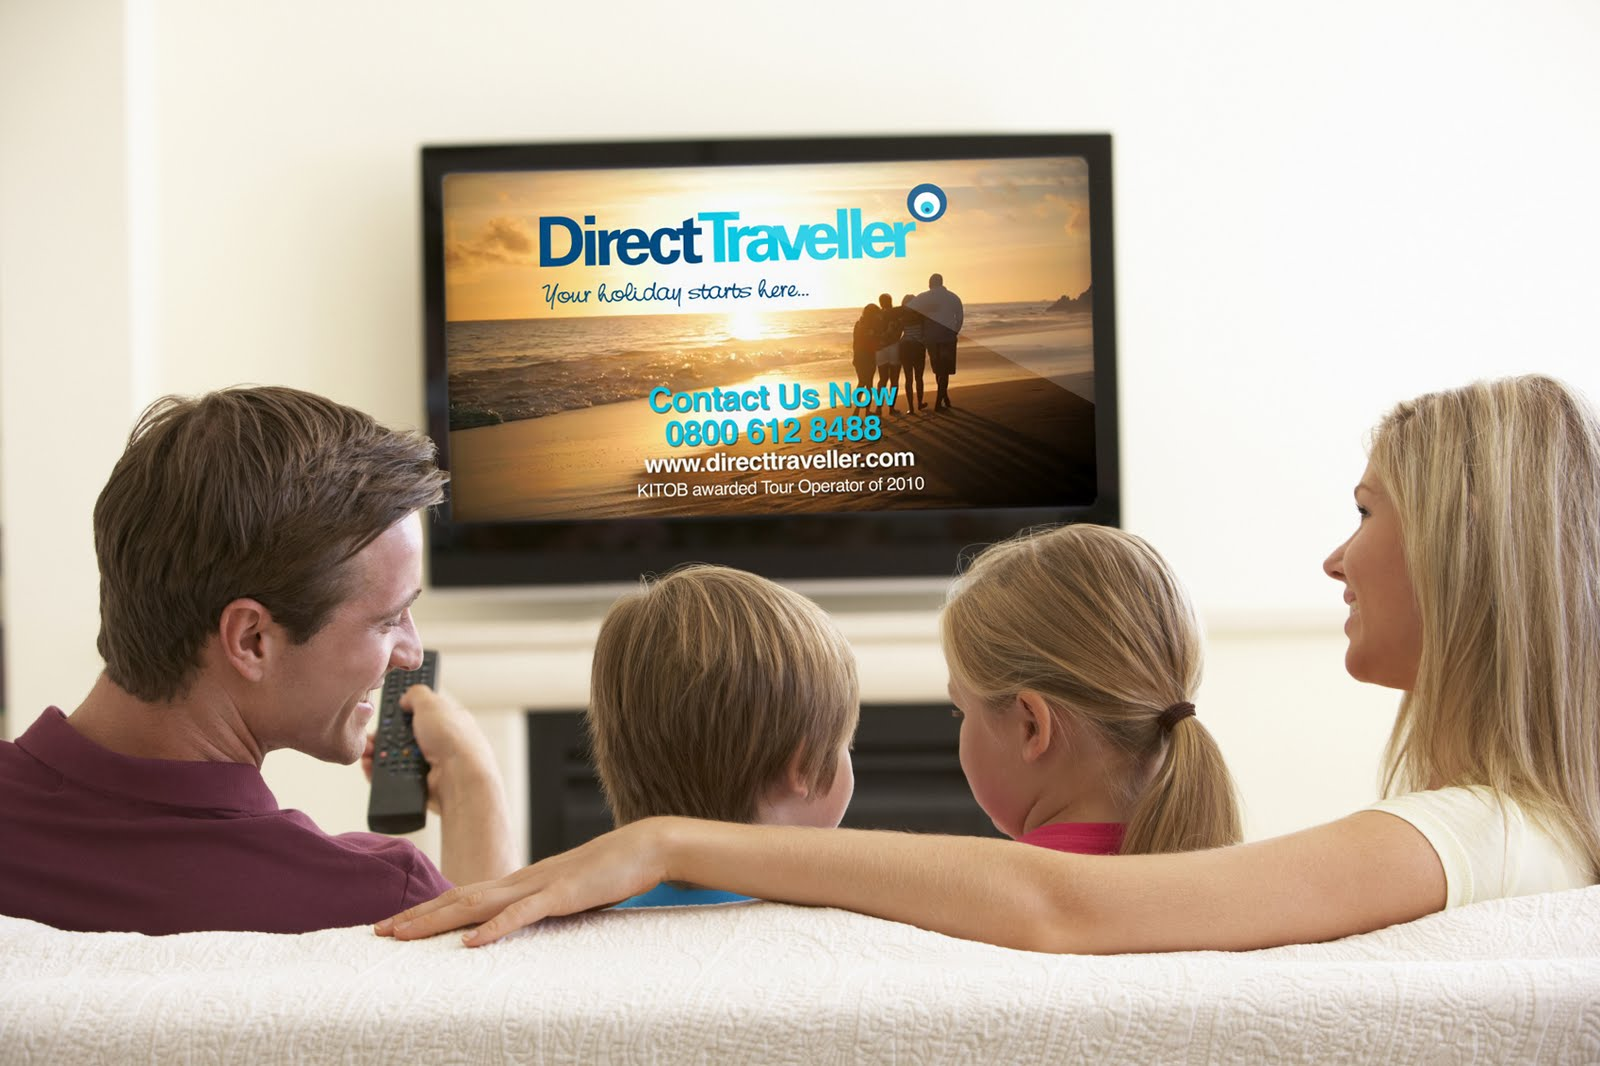 UK's First North Cyprus TV campaign - Direct Traveller